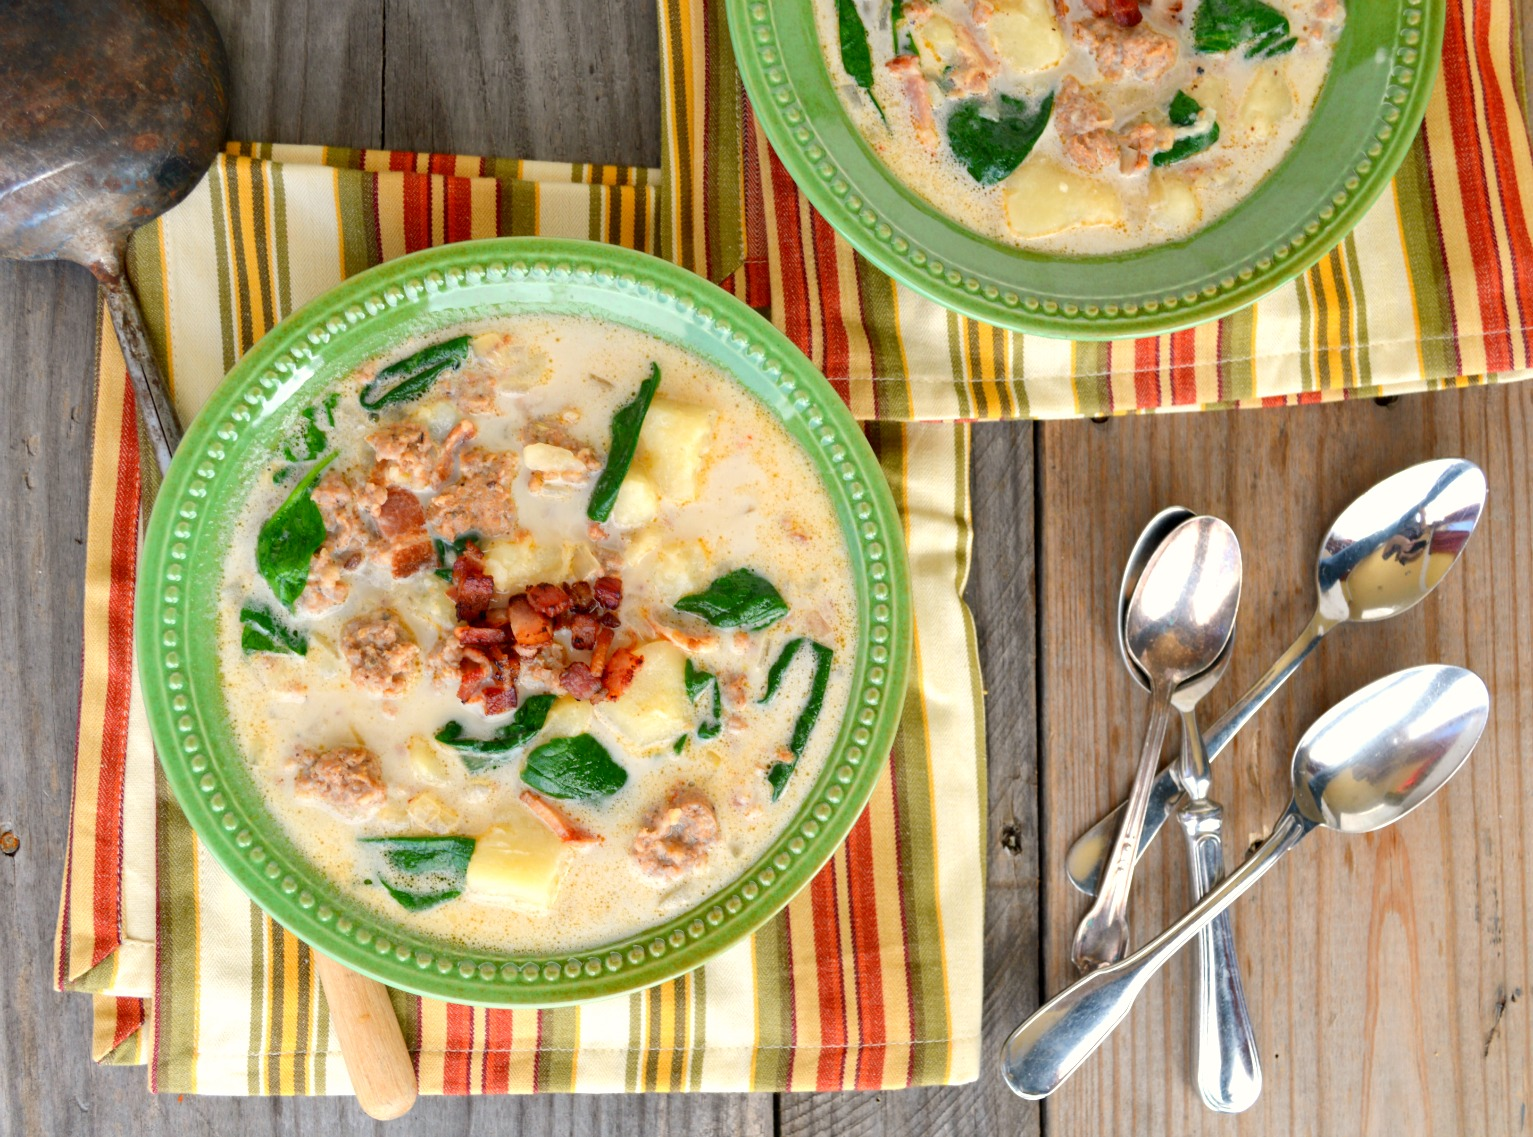 This Zuppa Toscana recipe is rich, creamy and delicious! Easy to make and ready in 30 minutes